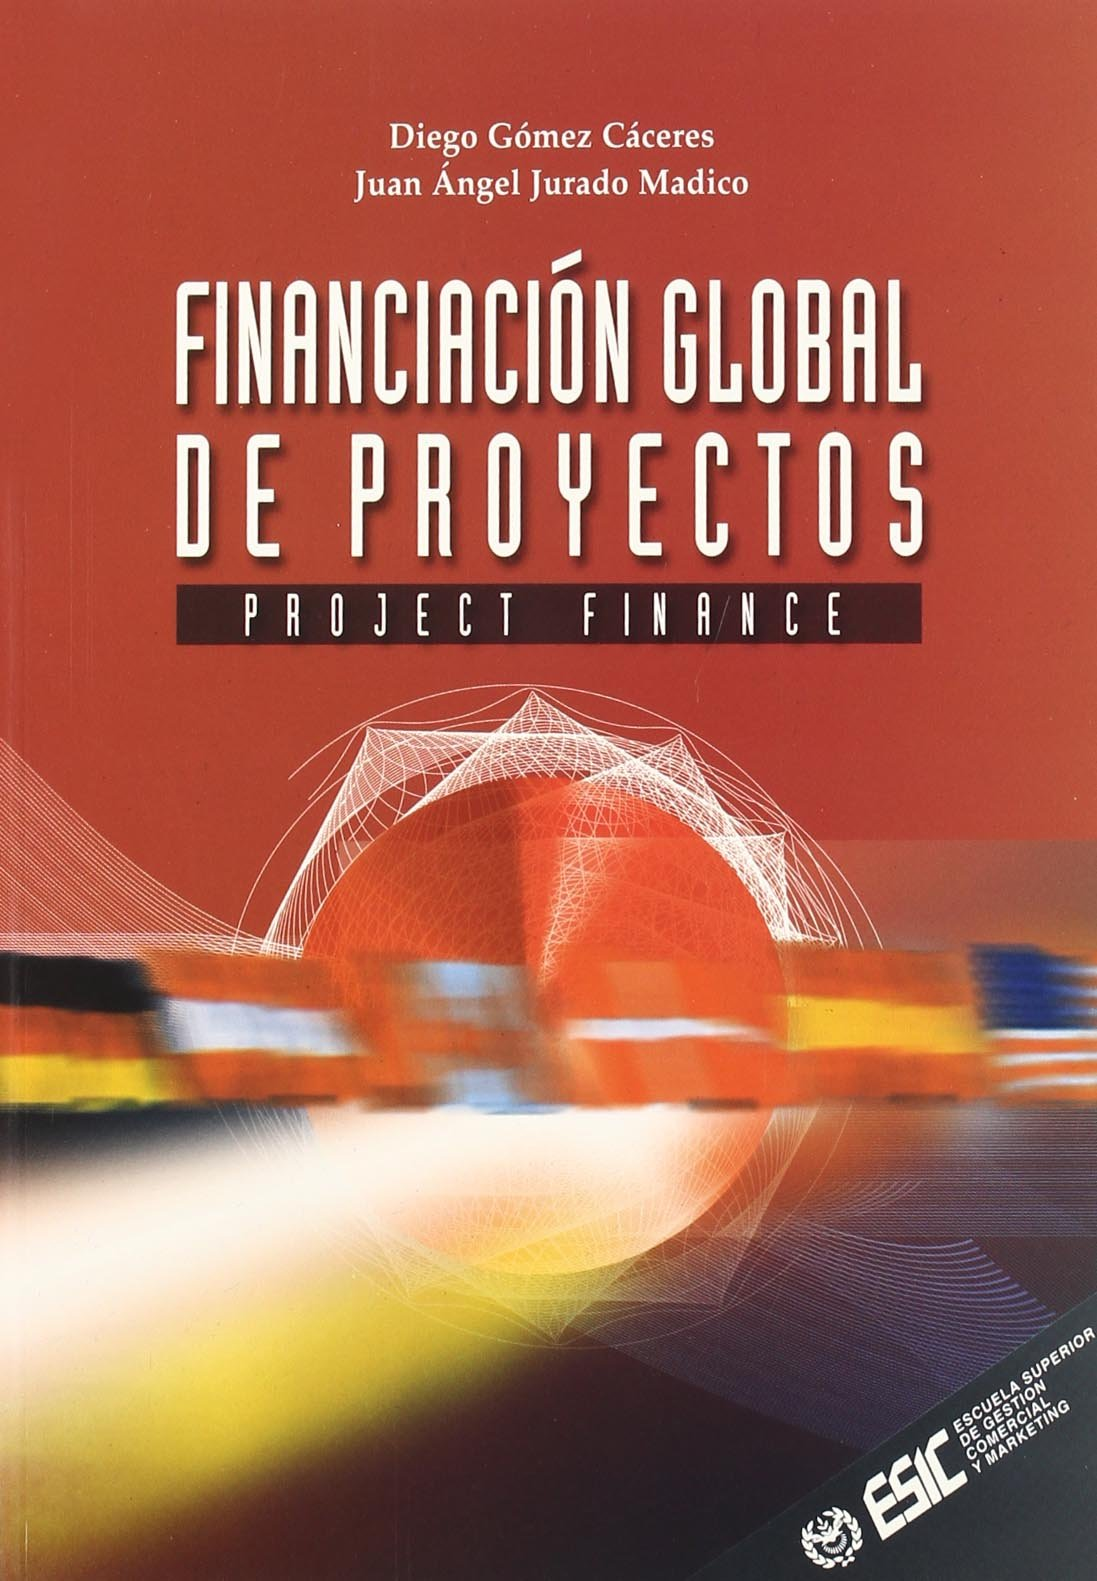 Financiacion Global de Proyectos - Project Finance (Spanish Edition) by Esic